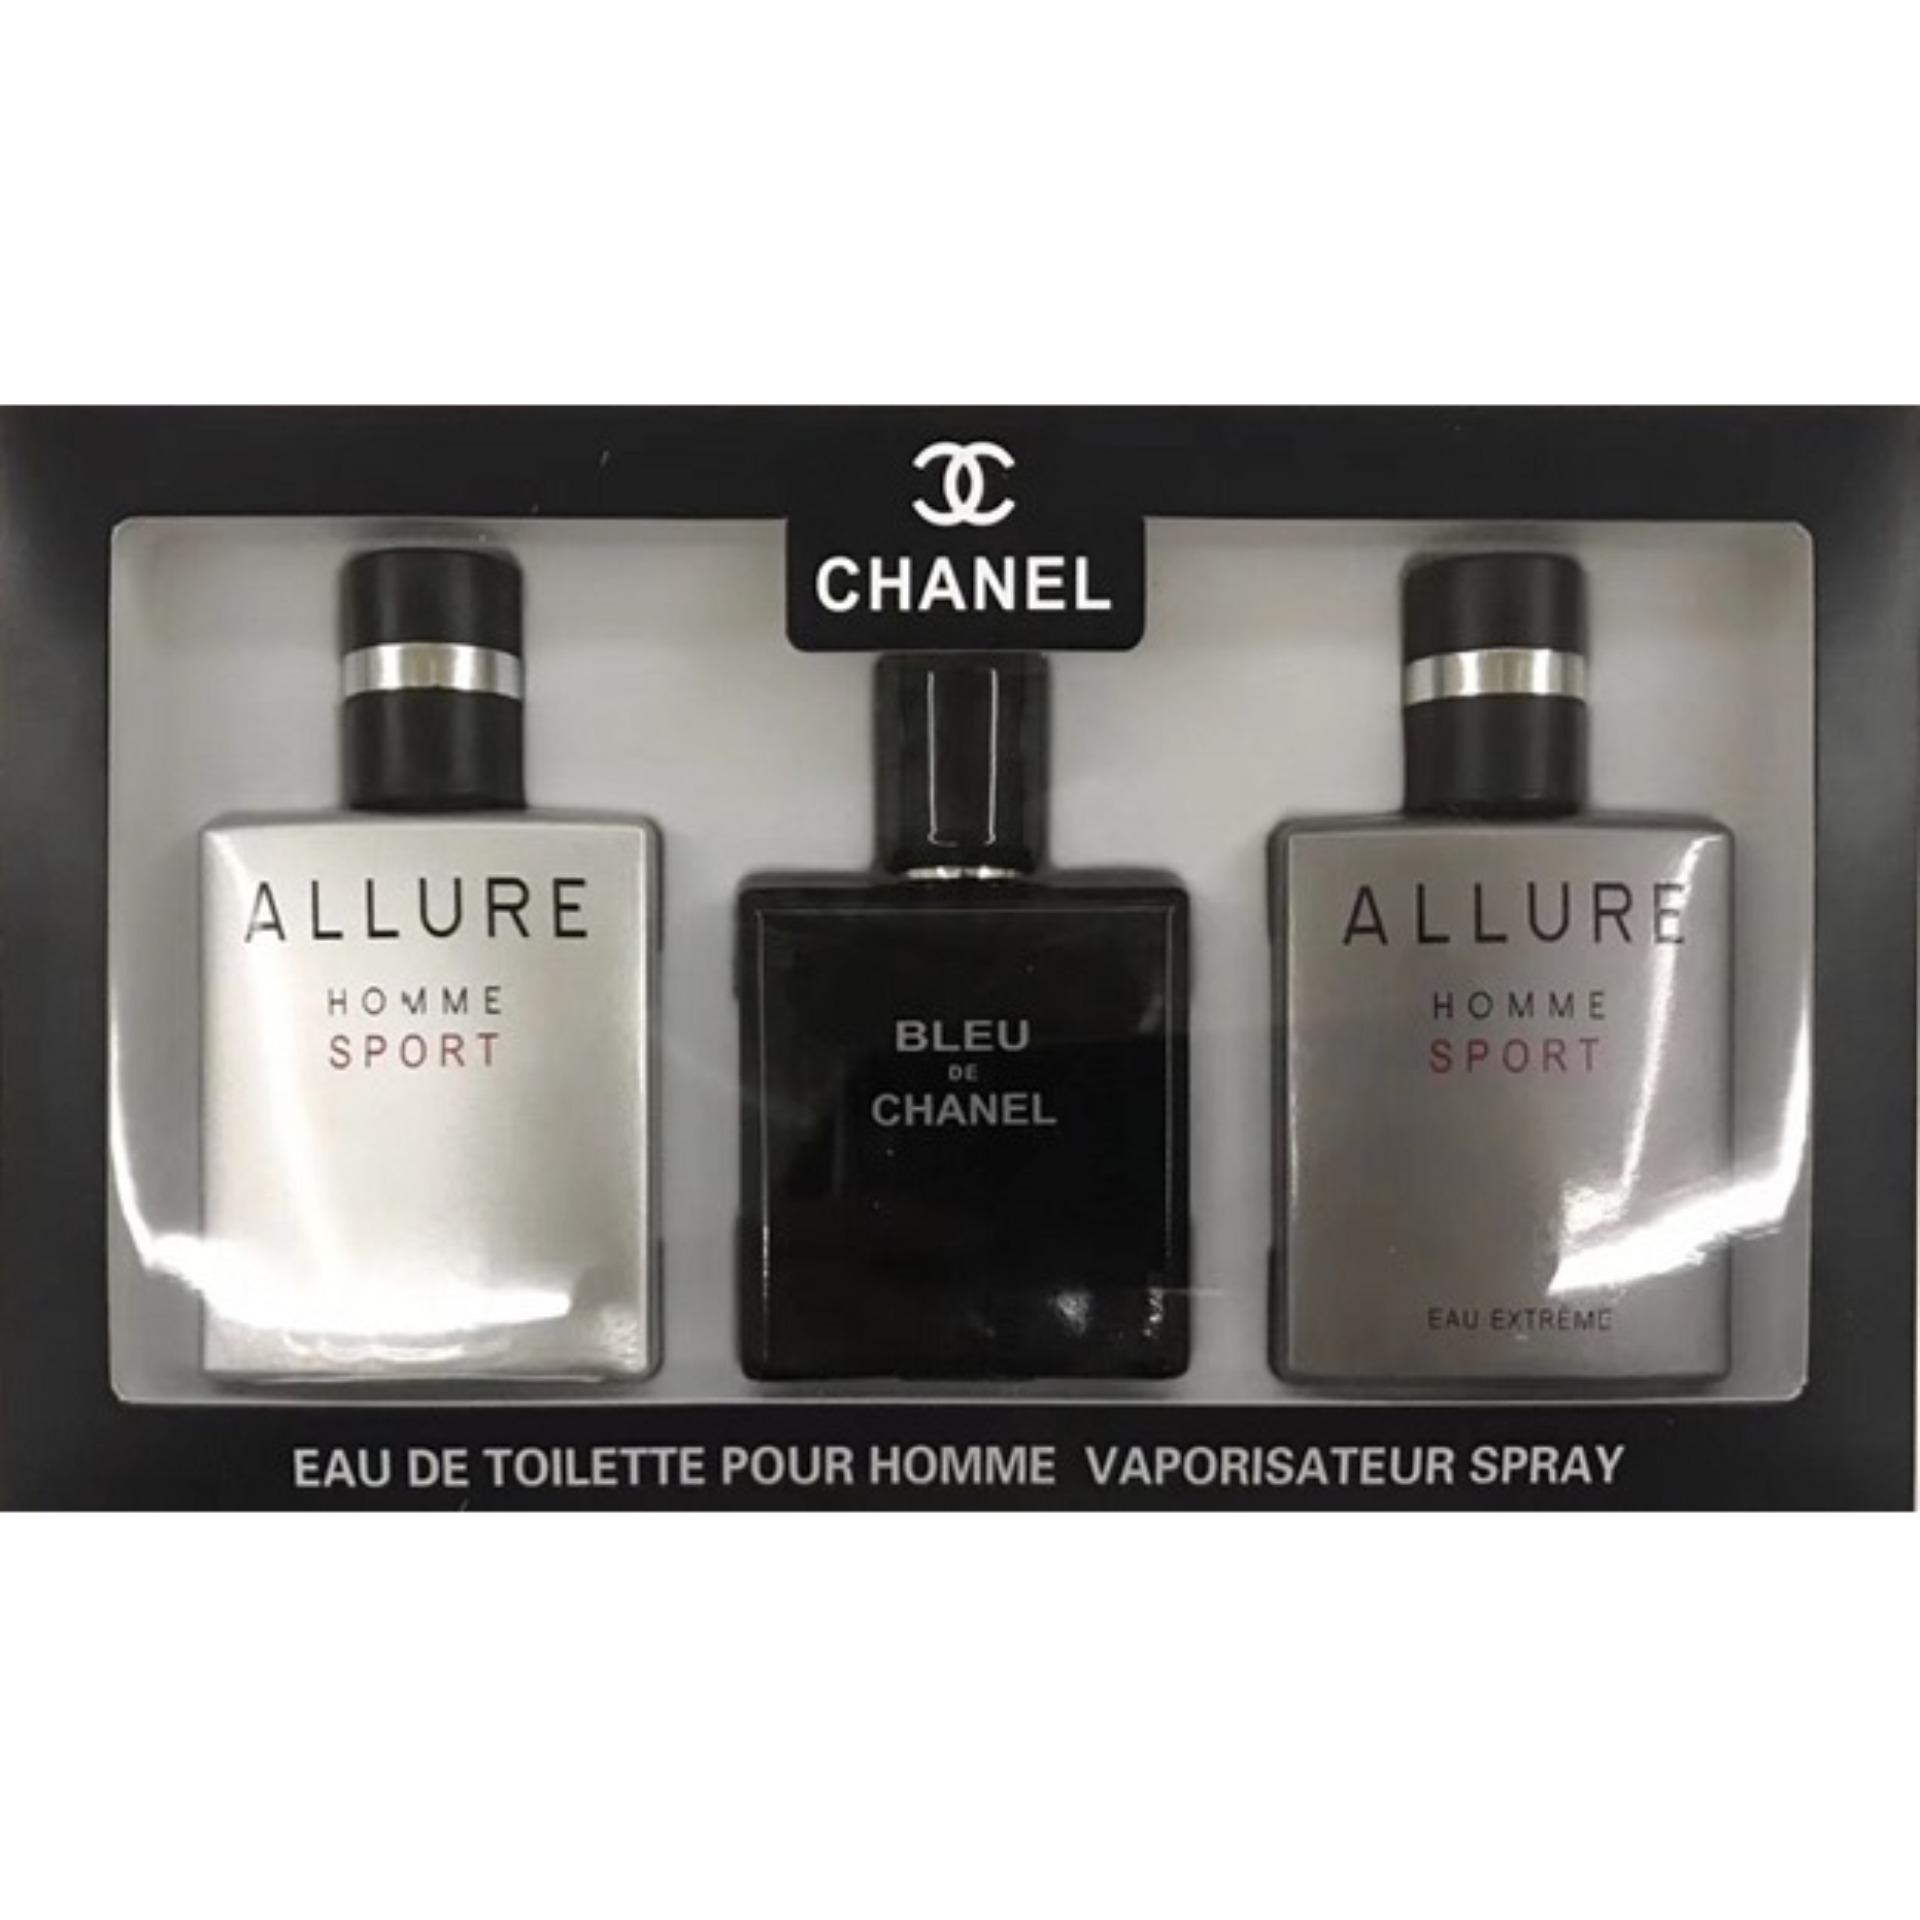 286f90c77a3 CHANEL Philippines  CHANEL price list - CHANEL Perfumes   Cosmetics ...